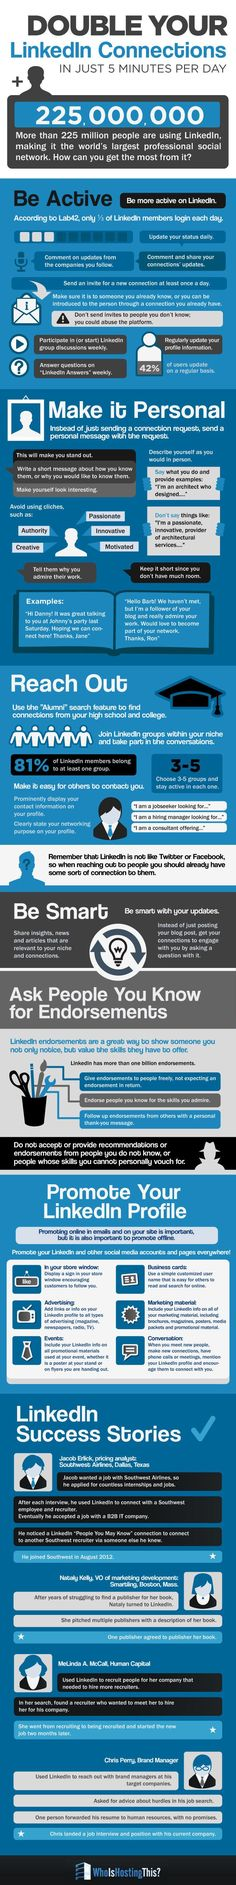 """SOCIAL MEDIA - """"How to Double Your #LinkedIn Connections [INFOGRAPHIC]."""" Not sure if the 'promise' is realistic but some good advice on the management of your Linked'In account to increase contacts and traffic........................................................... Visit Now!  OwnItLand.com"""